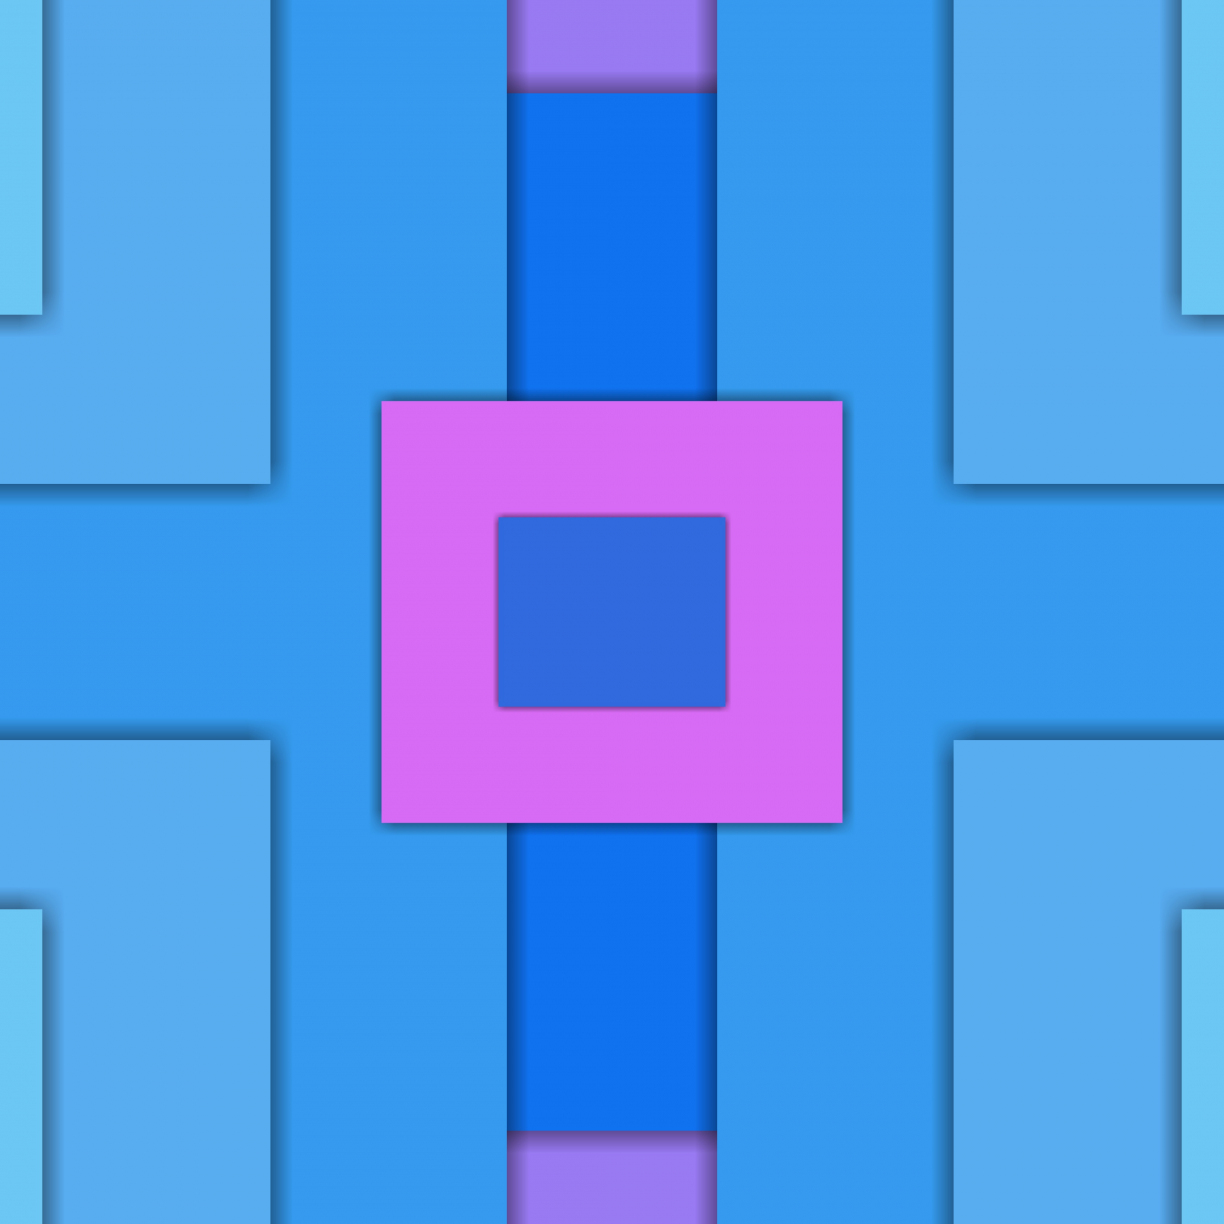 Squares, abstract, material design, 1224x1224 wallpaper